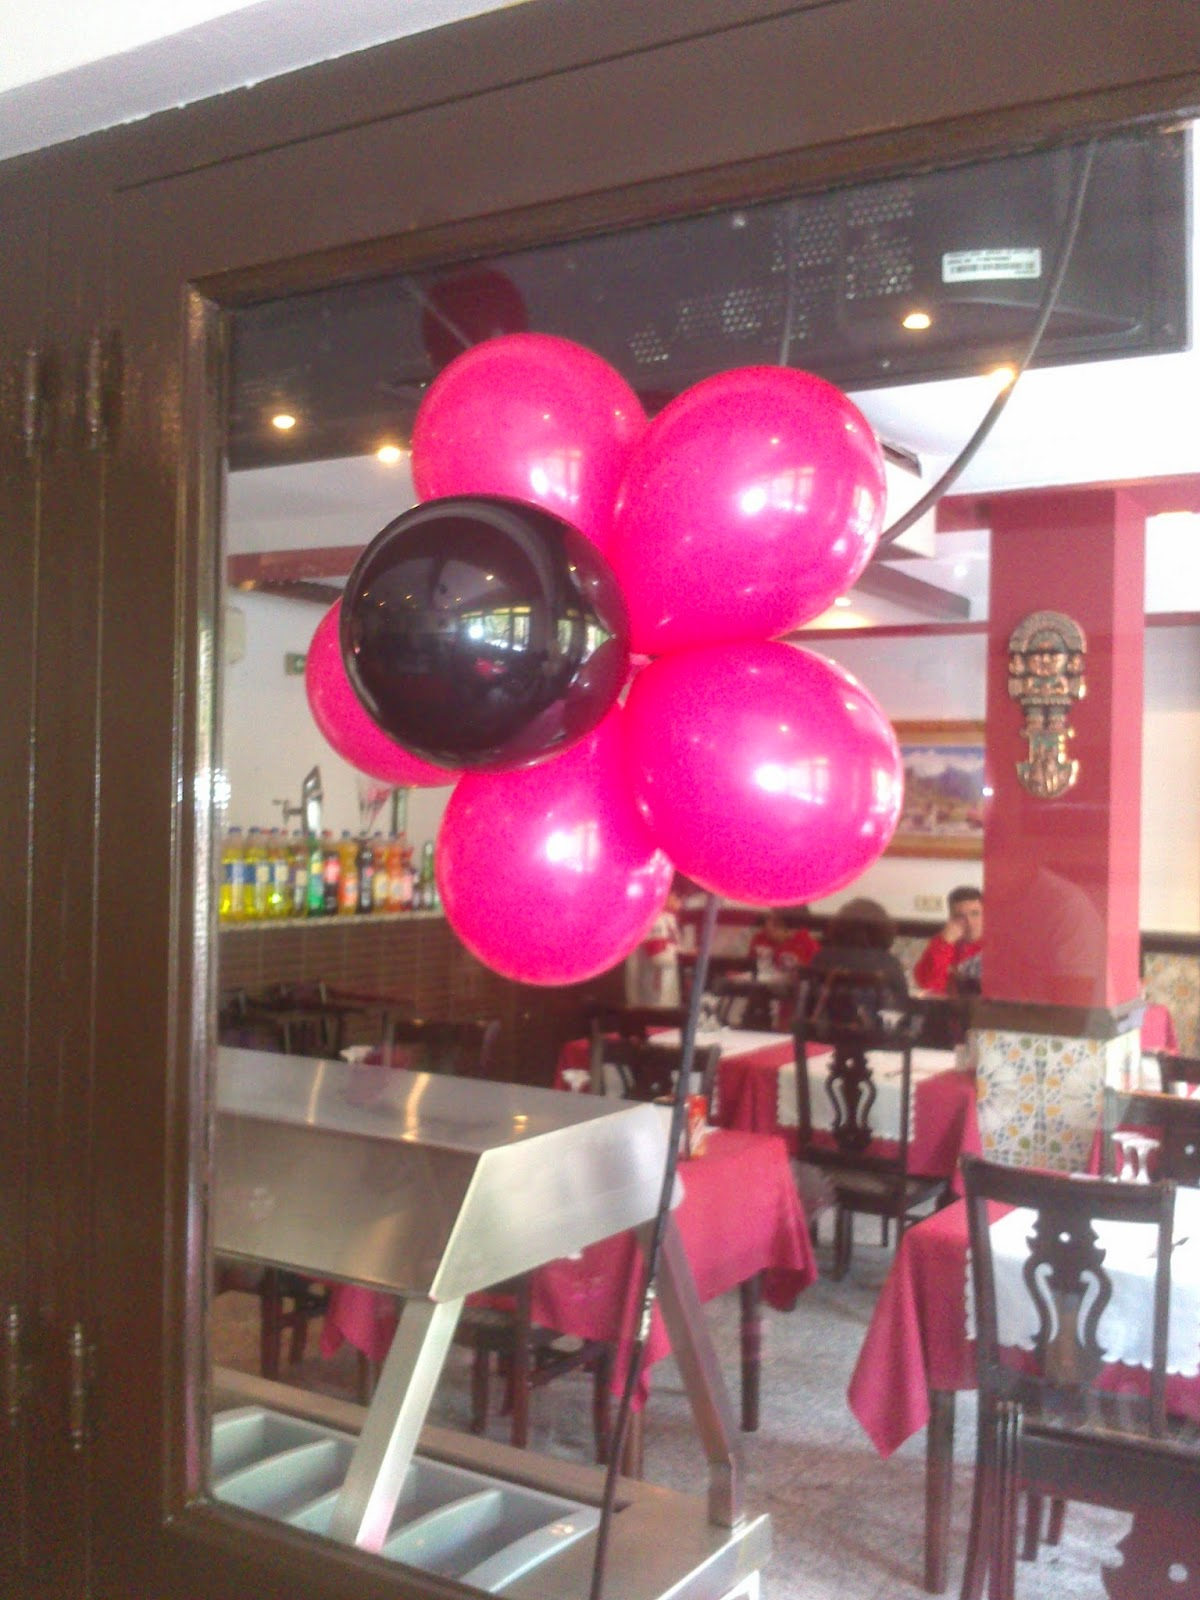 Globos y otros globos decoraci n de cumplea os en fucsia for Decoracion para pared fucsia